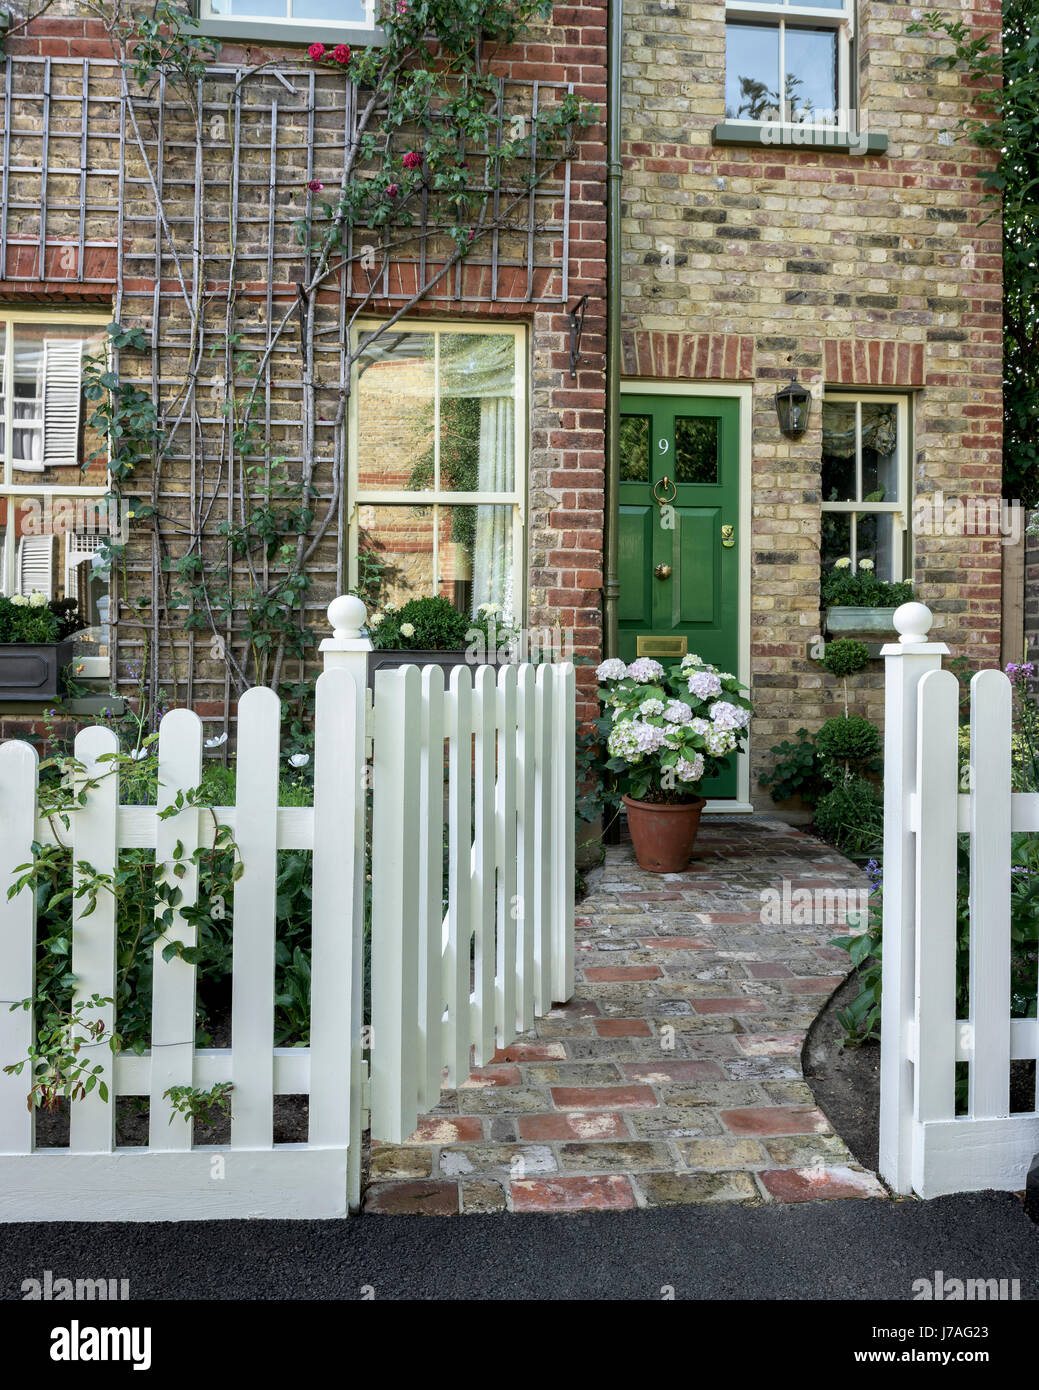 Exterior Facade Of Late Victorian Cottage With Tiled Path And Green Front  Door